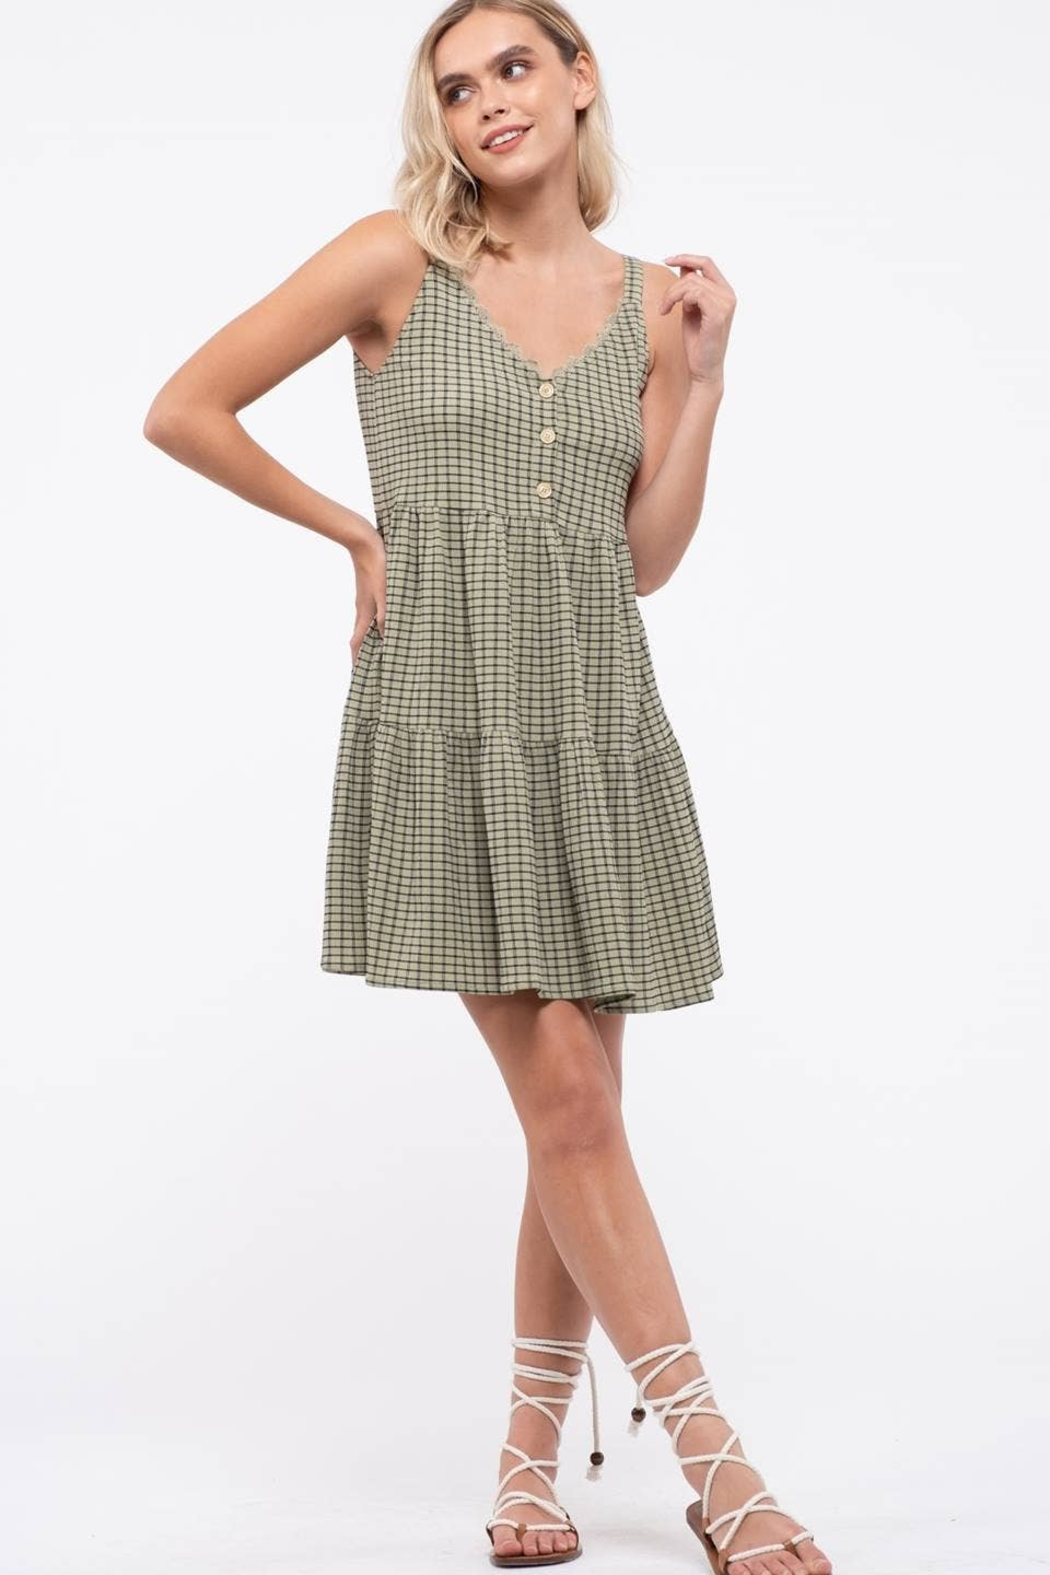 blu pepper  Grid Check Tiered Dress - Main Image